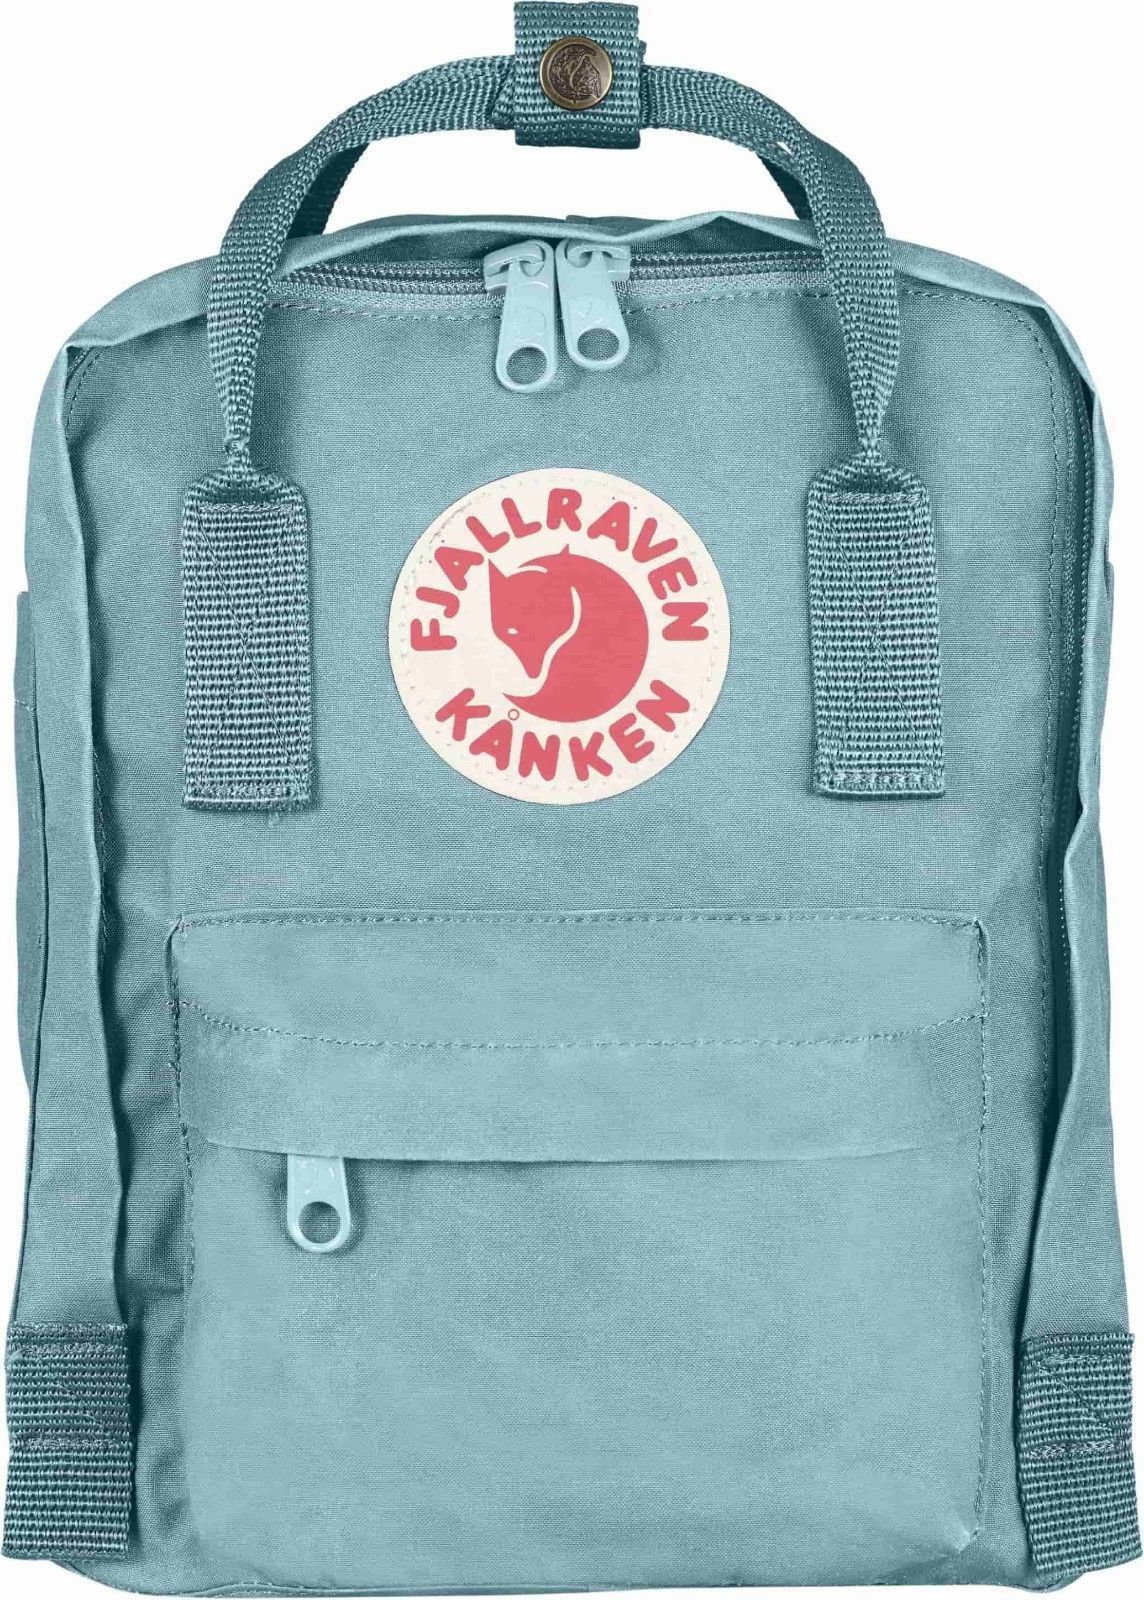 7L/ Mini BackPack Brand School Bag Travel Sky Blue